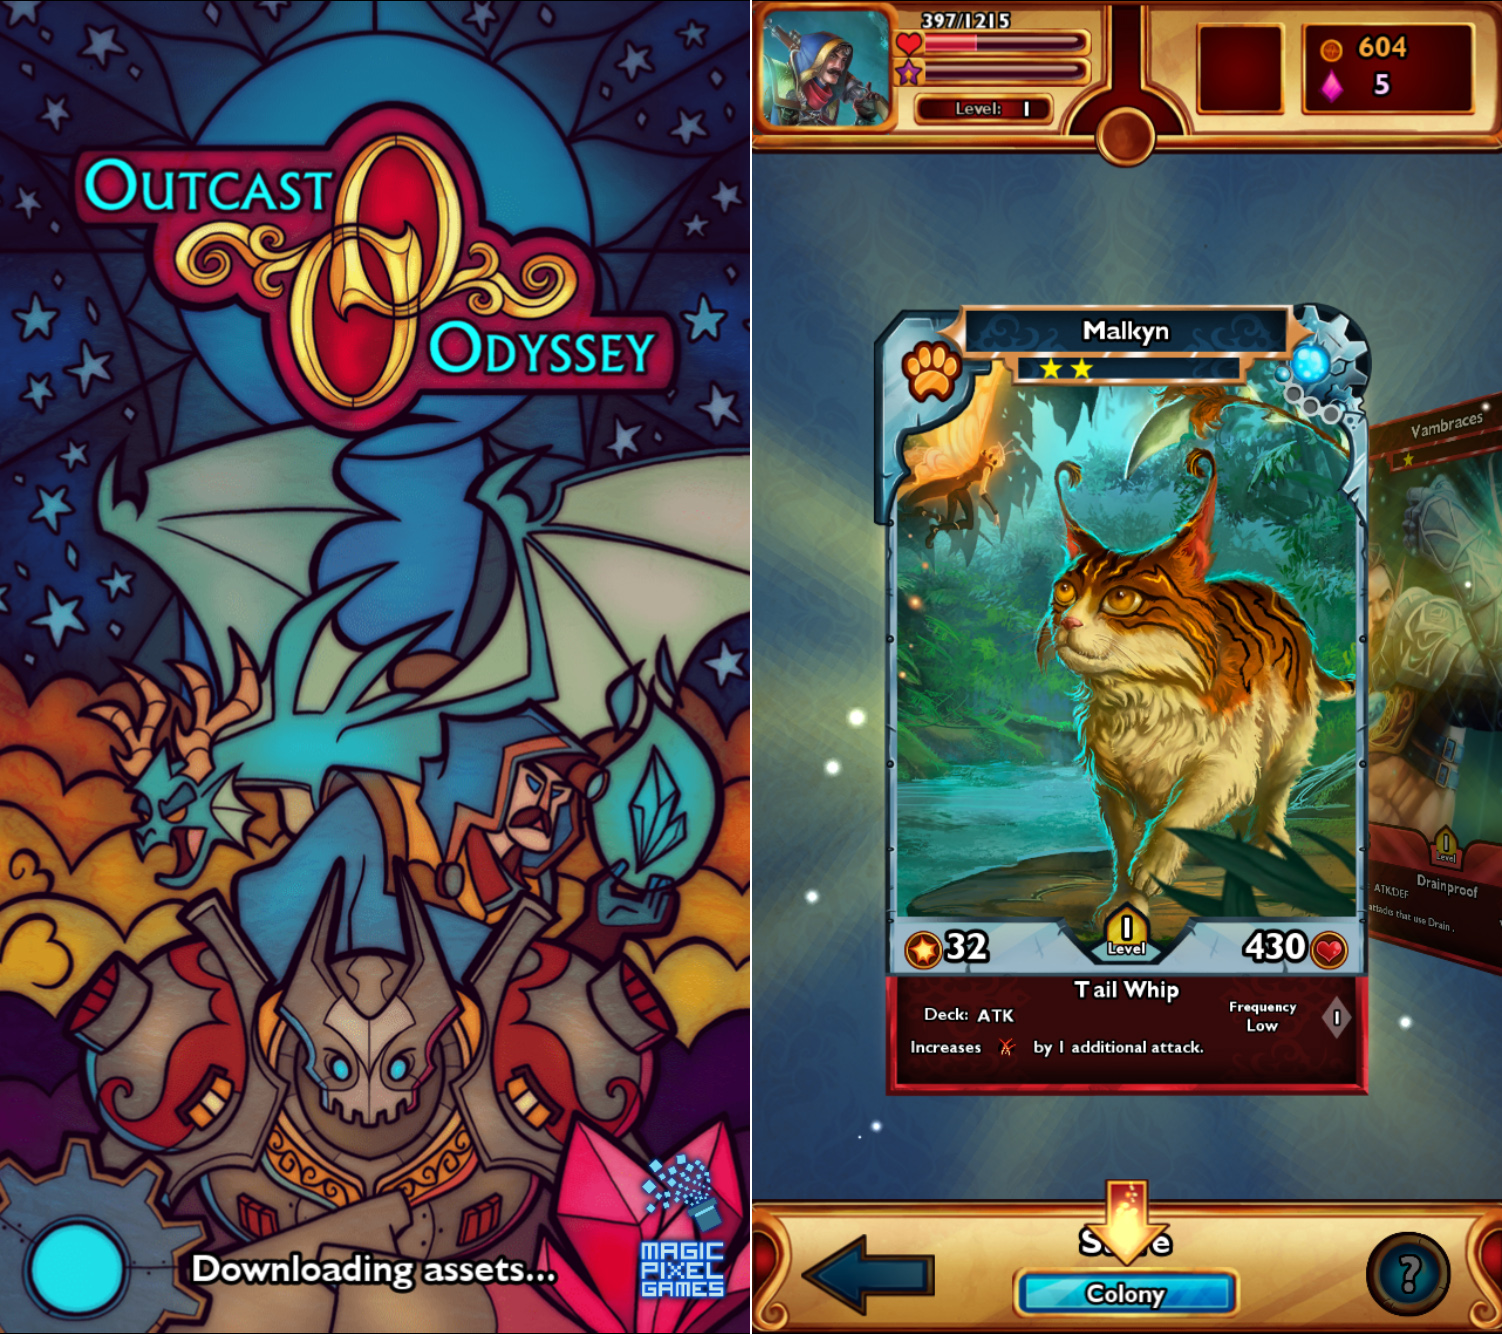 Explore, collect and battle in Outcast Odyssey for a chance to win a $10 iTunes gift card